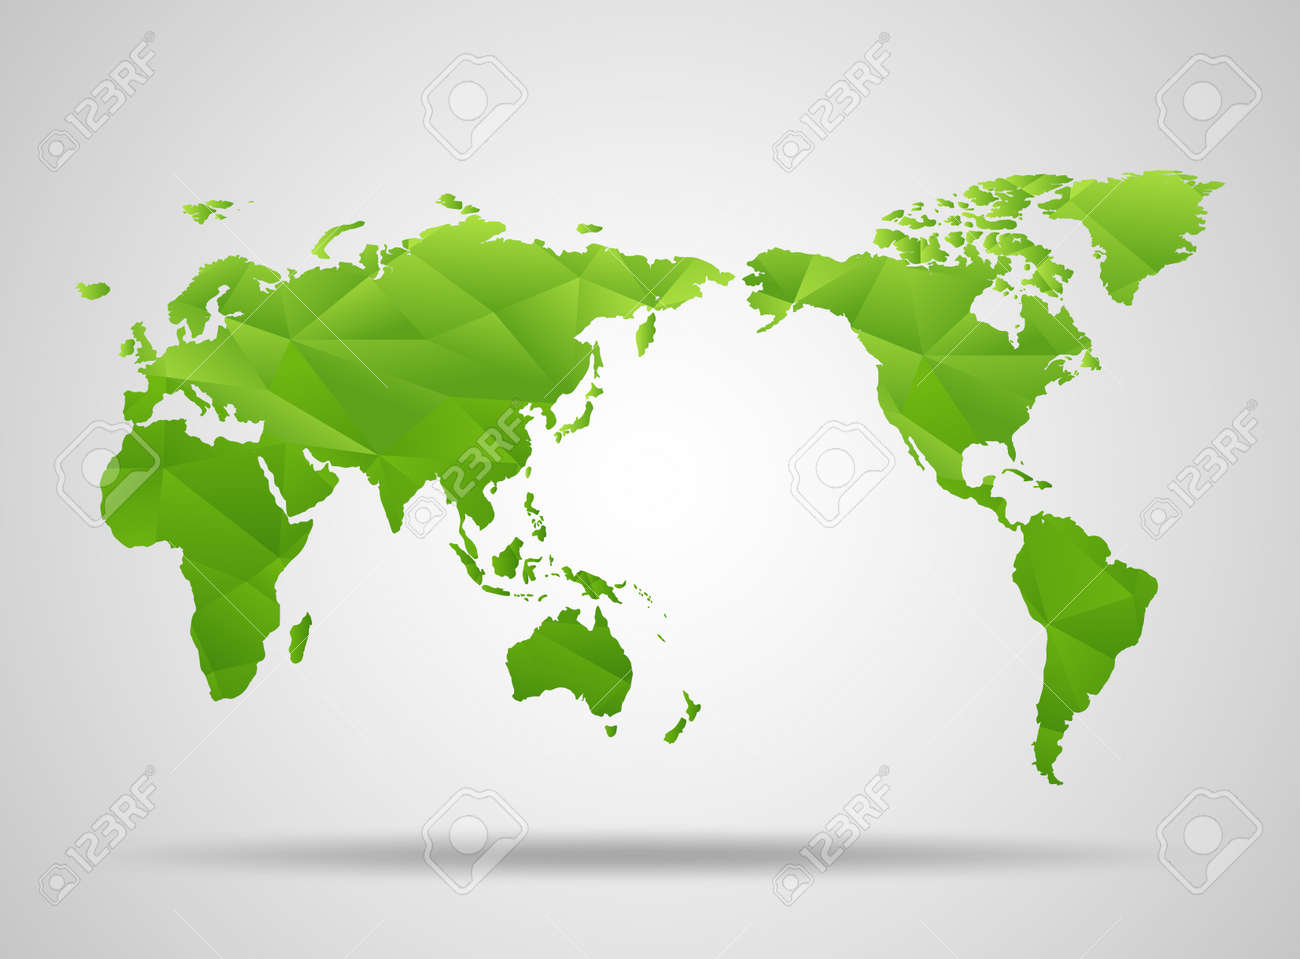 World map low poly design green origami planet vector foto de archivo world map low poly design green origami planet vector illustration gumiabroncs Image collections